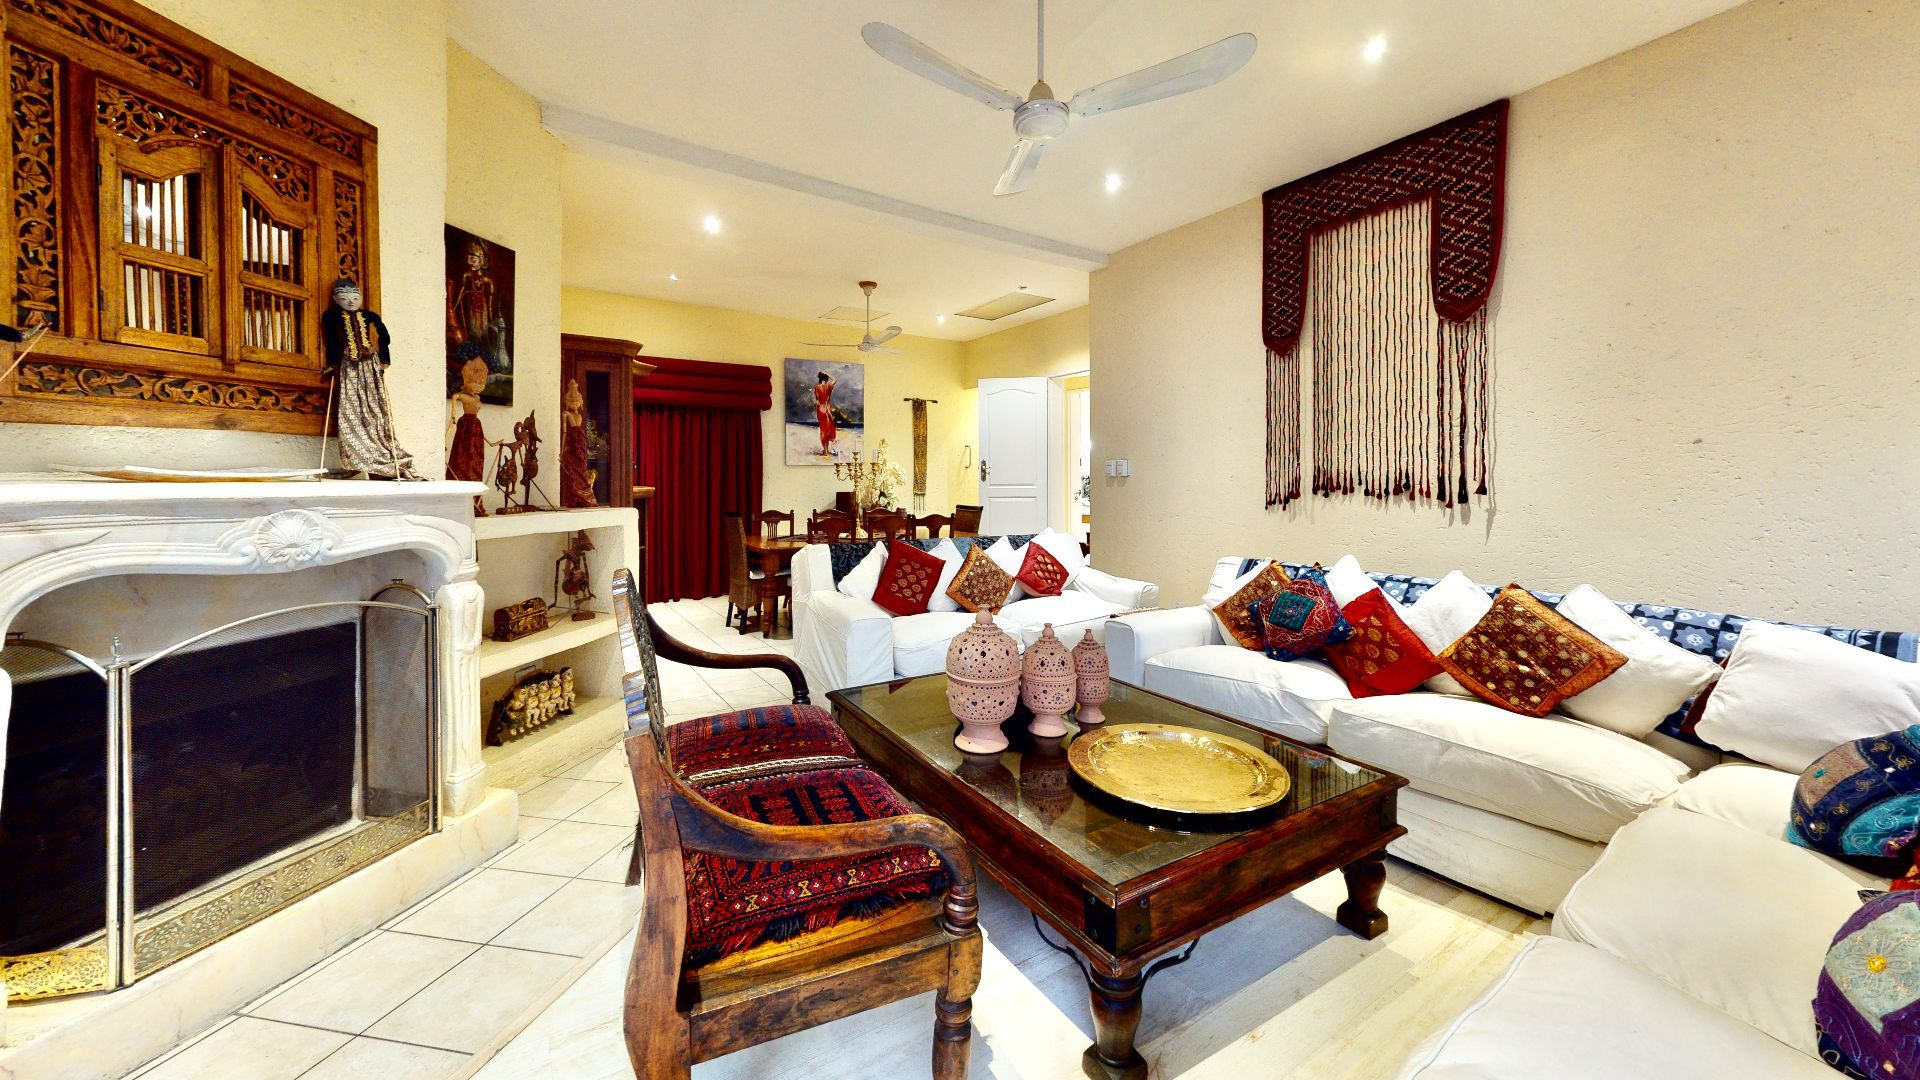 27Not-Just-a-14-Bedroom-Home-for-sale-in-Bryanston-it-is-much-more-Living-Room.jpg